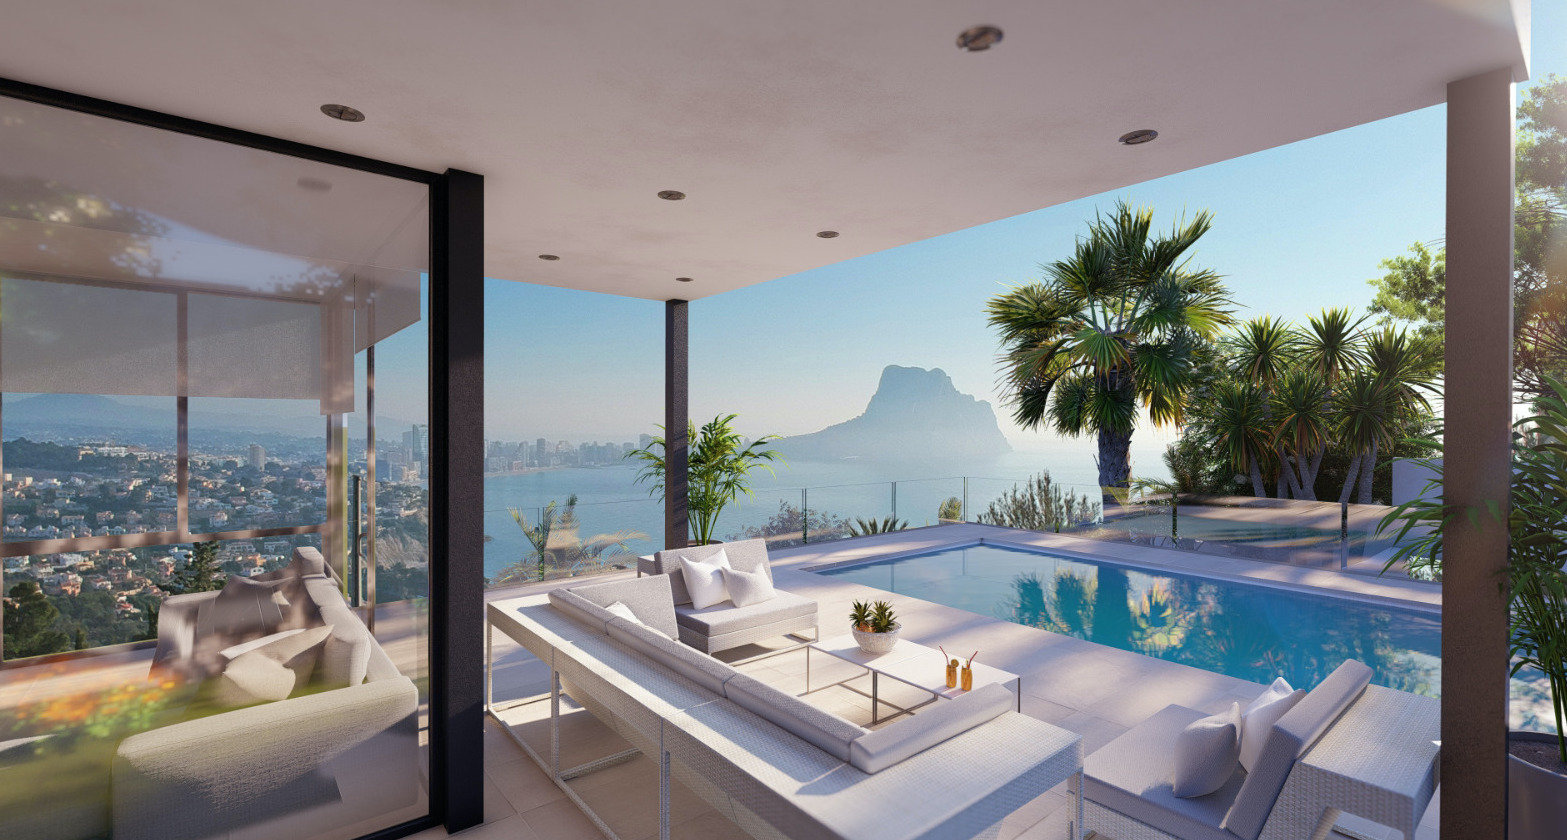 New build villa with panoramic sea views in Calpe